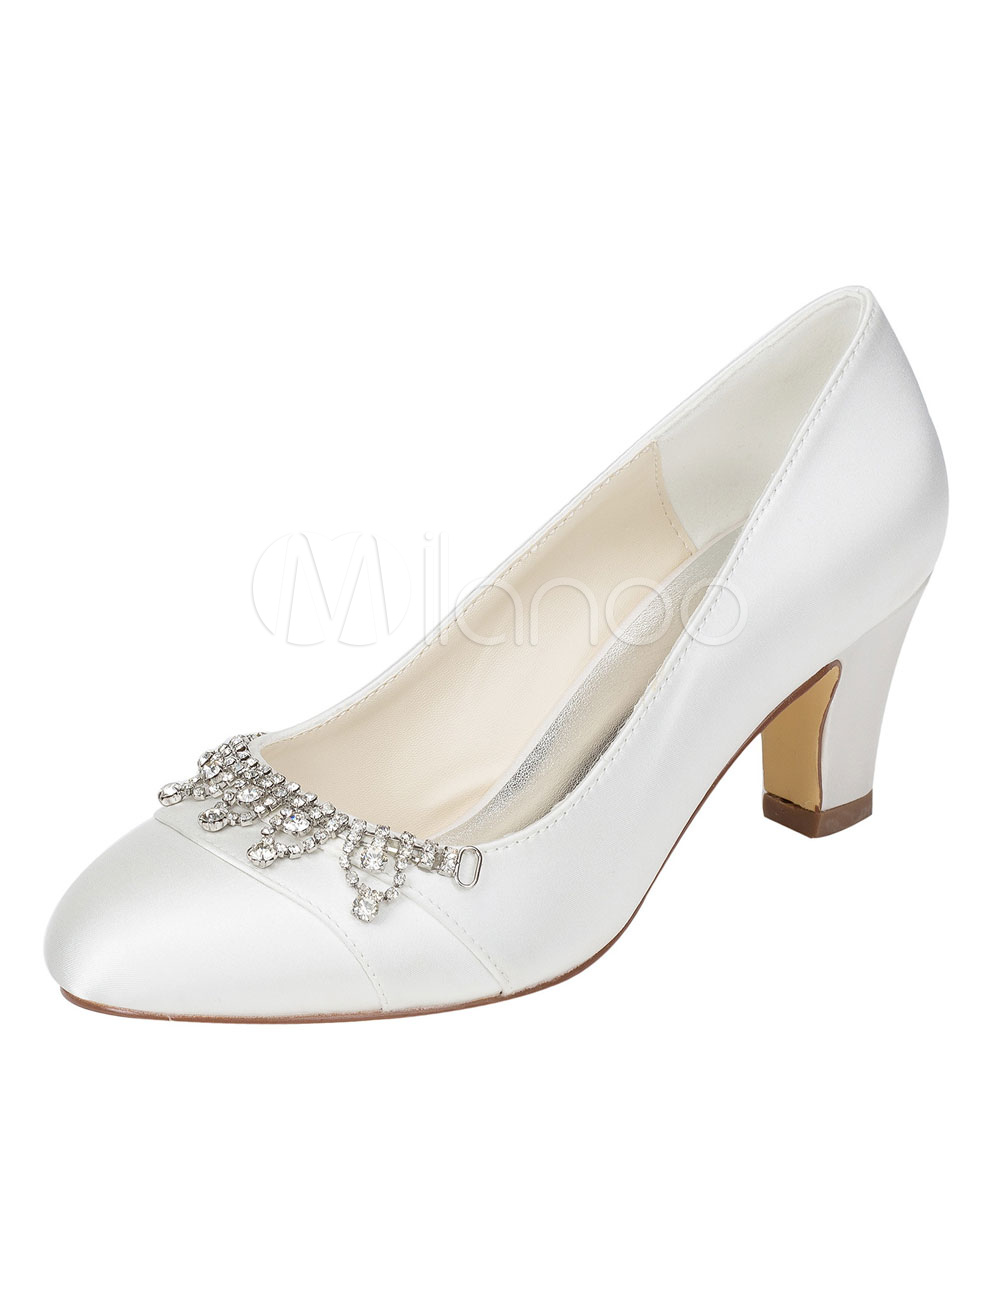 Ivory Bridal Shoes Silk Chunky Heel Rhinestone Round Toe Slip On Pumps For Wedding